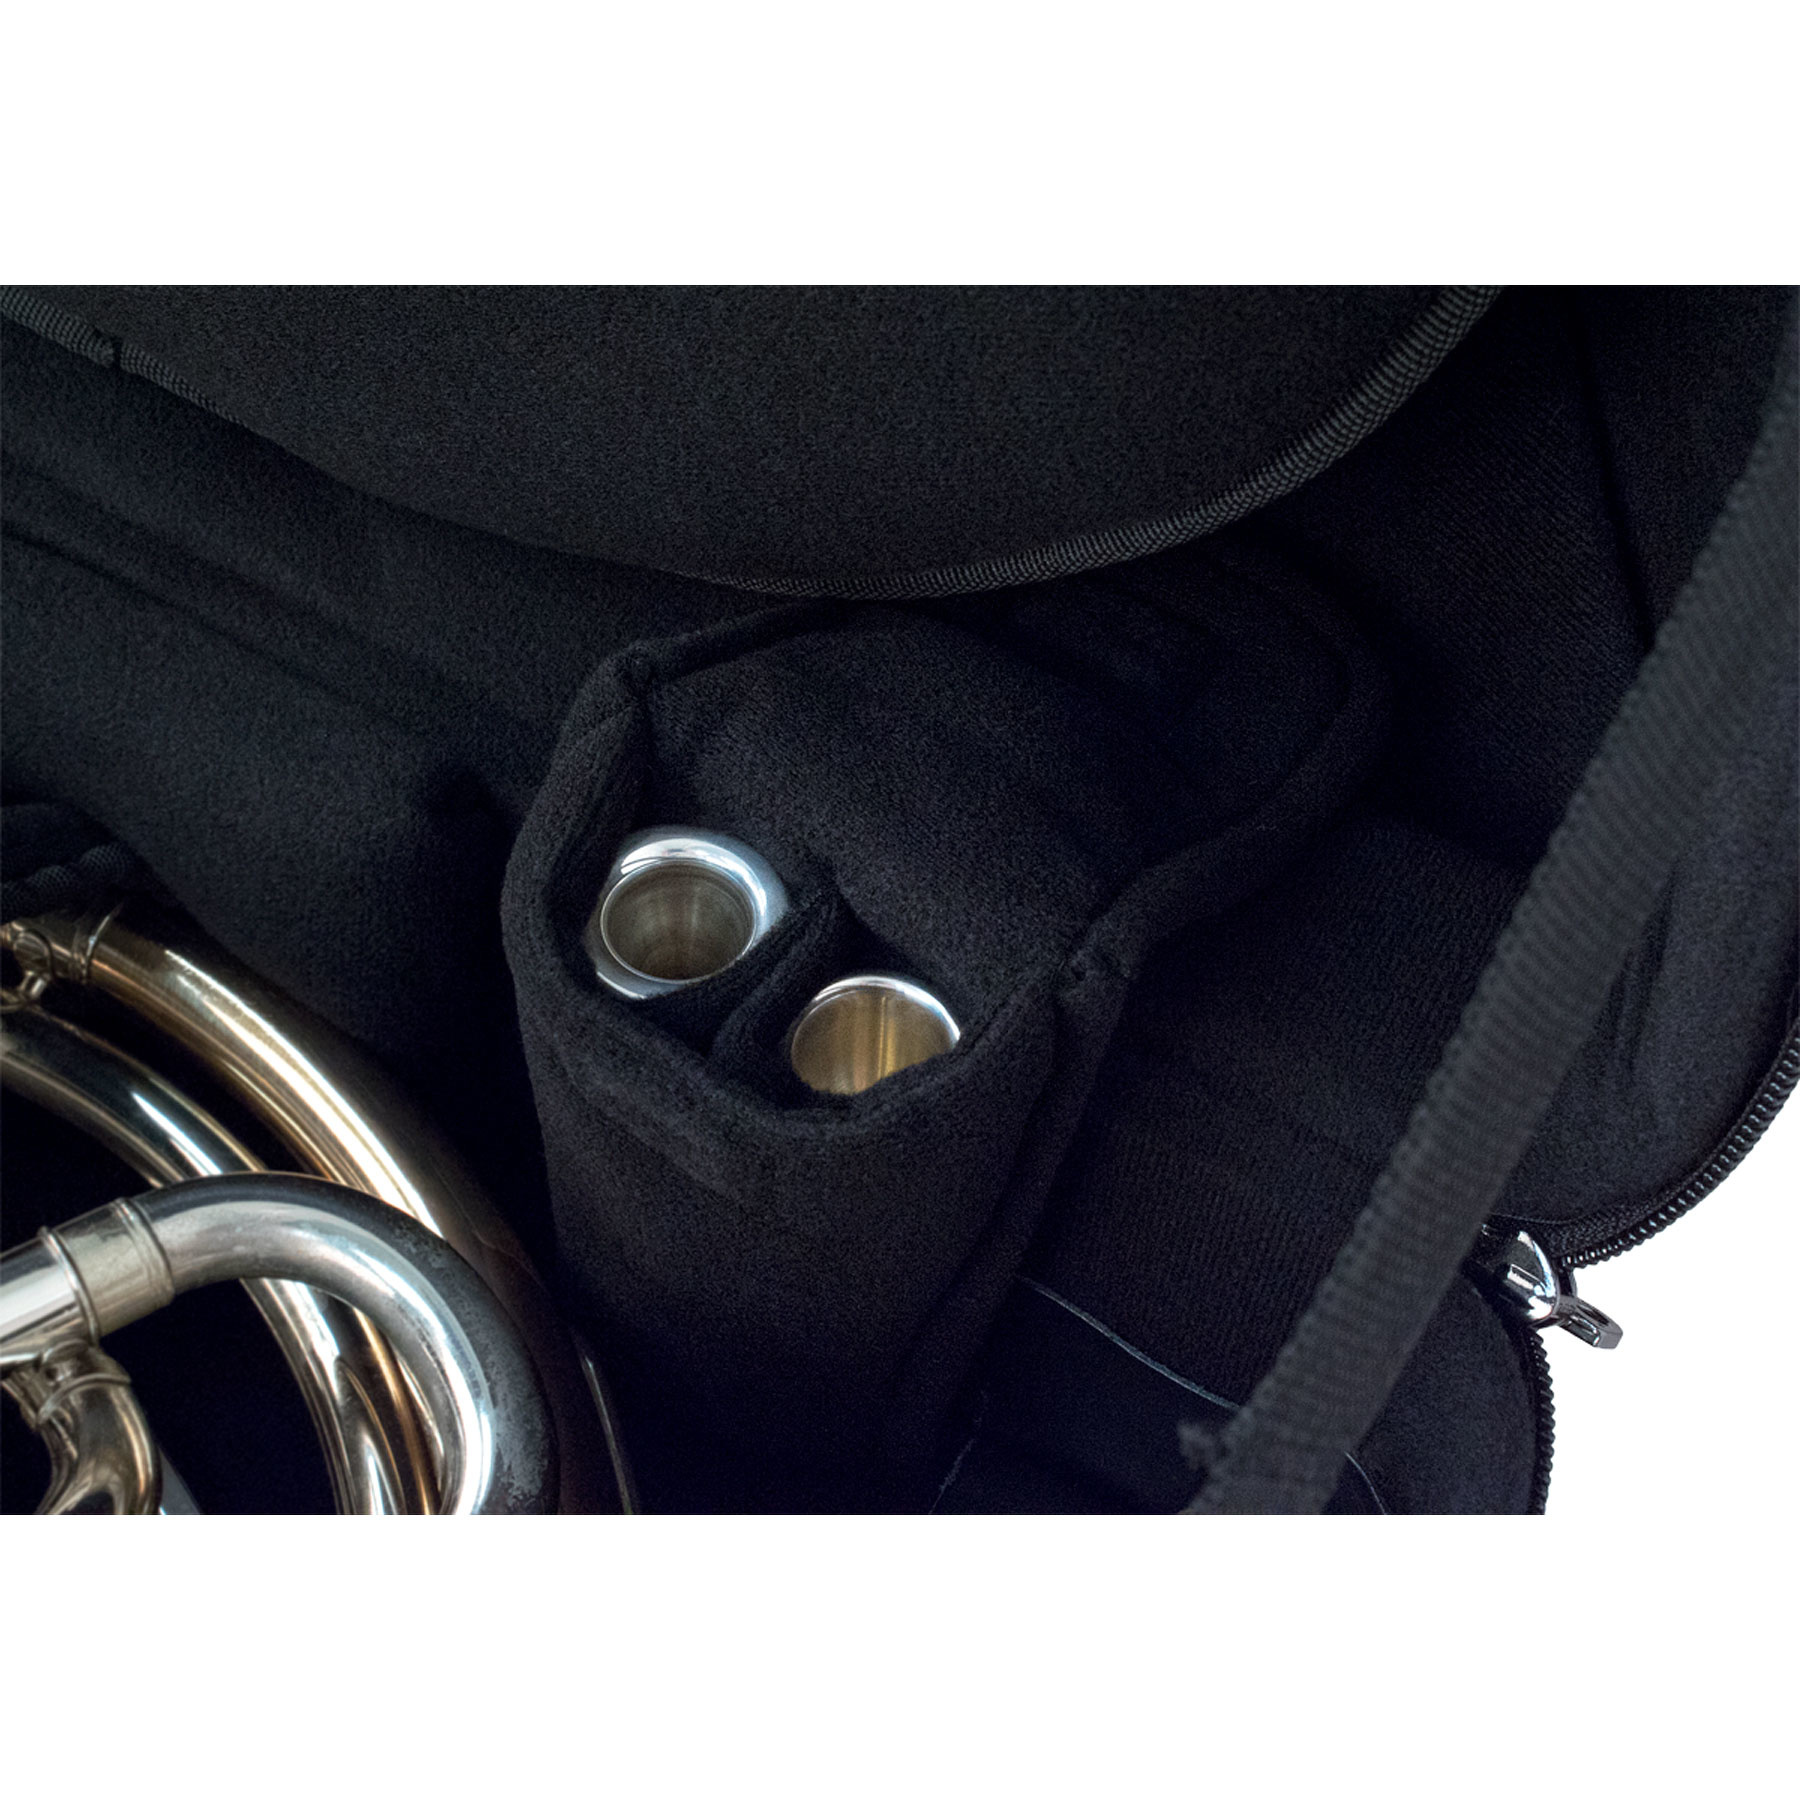 Protec Protec IPAC Screwbell French Horn Case